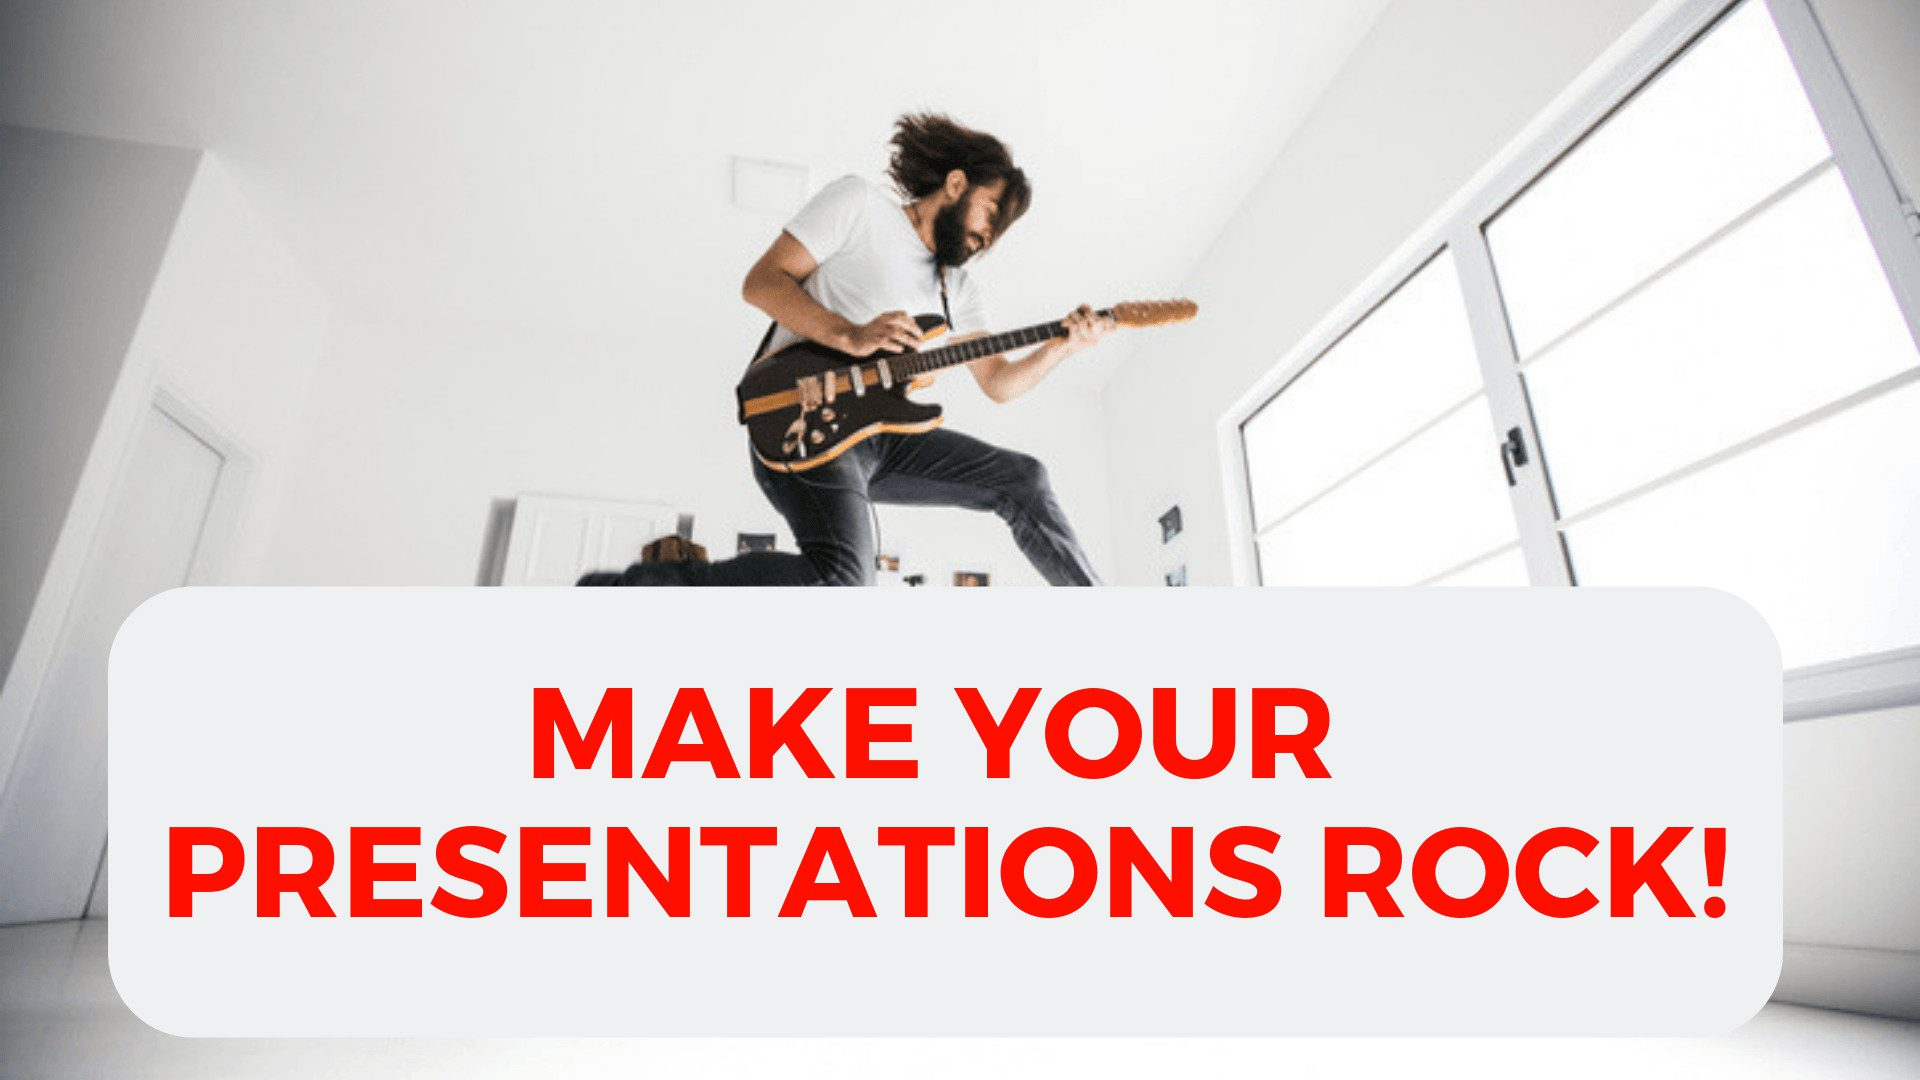 Make YOUR PRESENTATIONS ROCK!